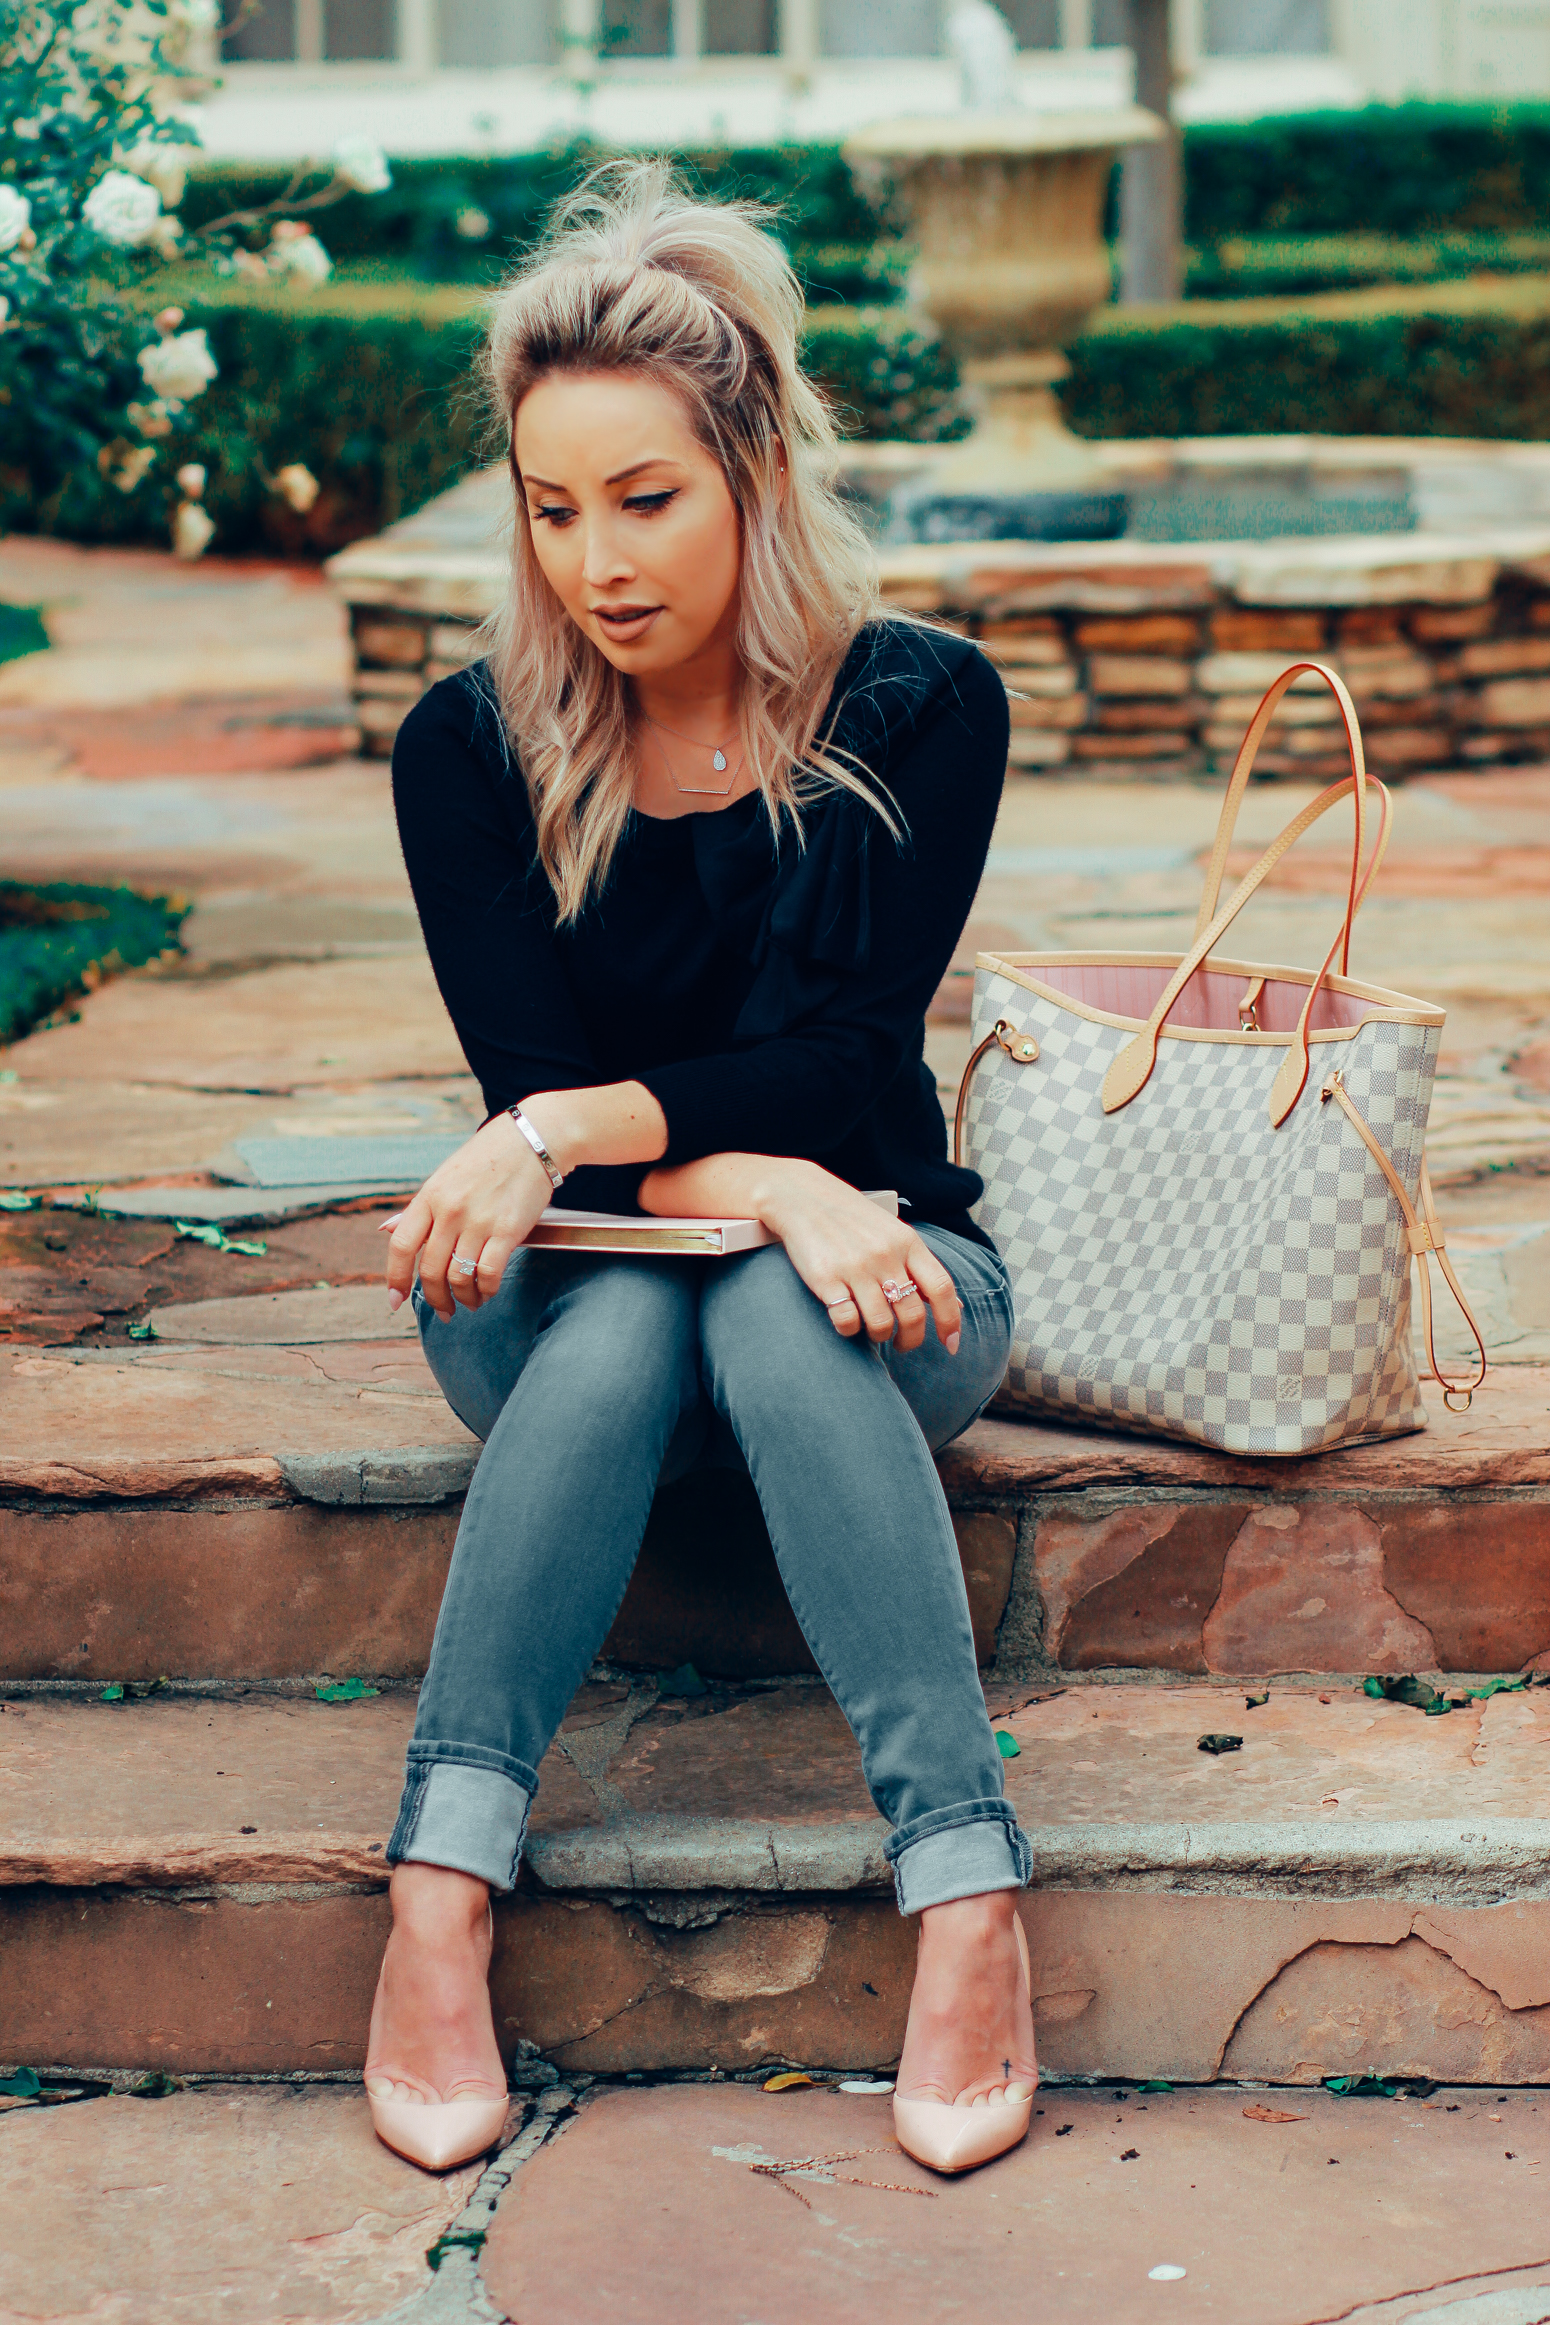 Blondie in the City | Louis Vuitton Neverfull | Hudson Jeans